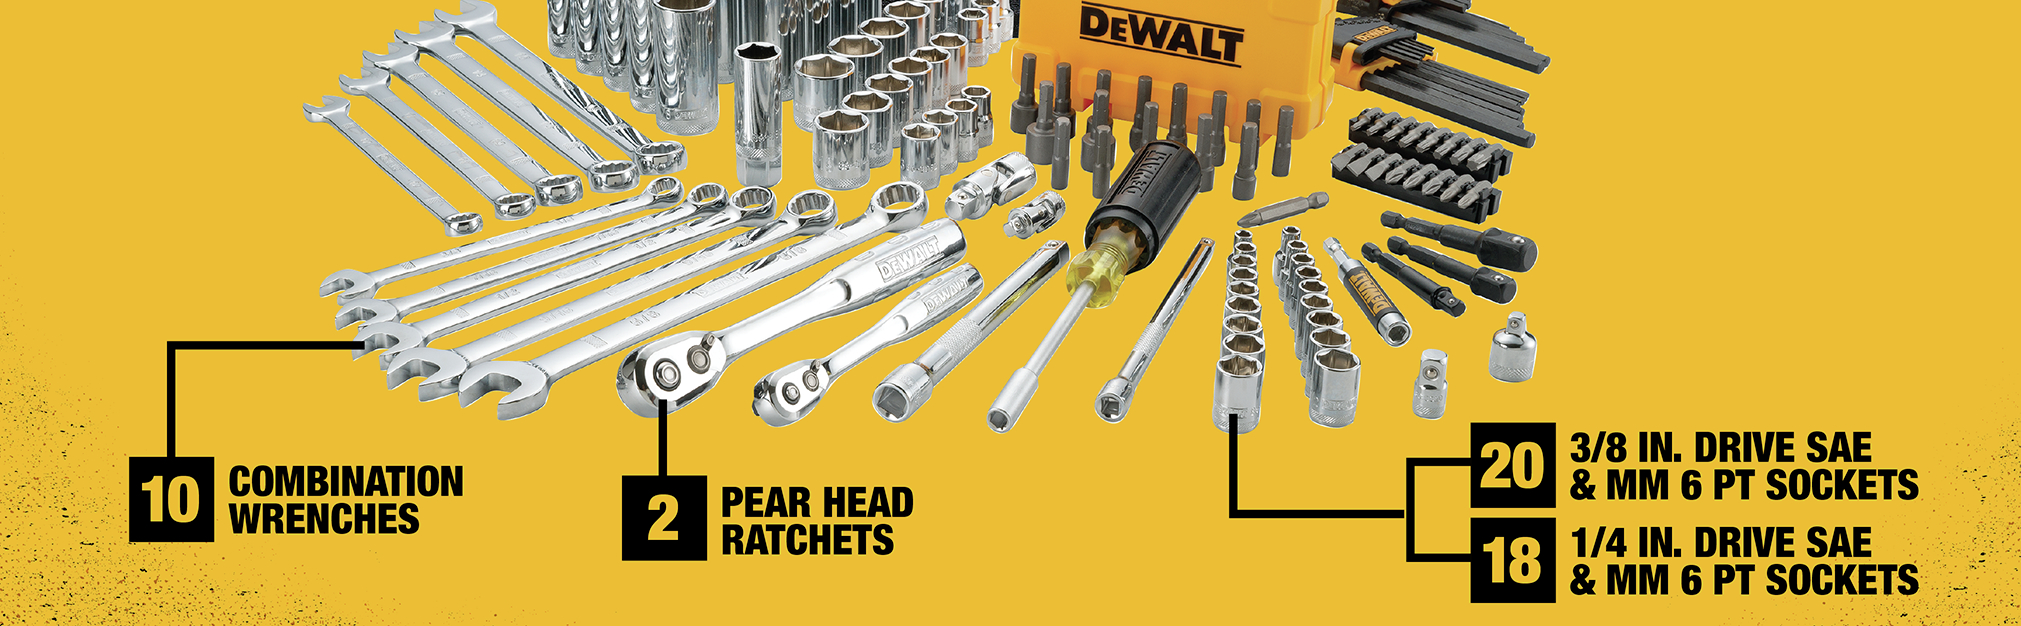 10 combination wrenches 2 pear head ratchets